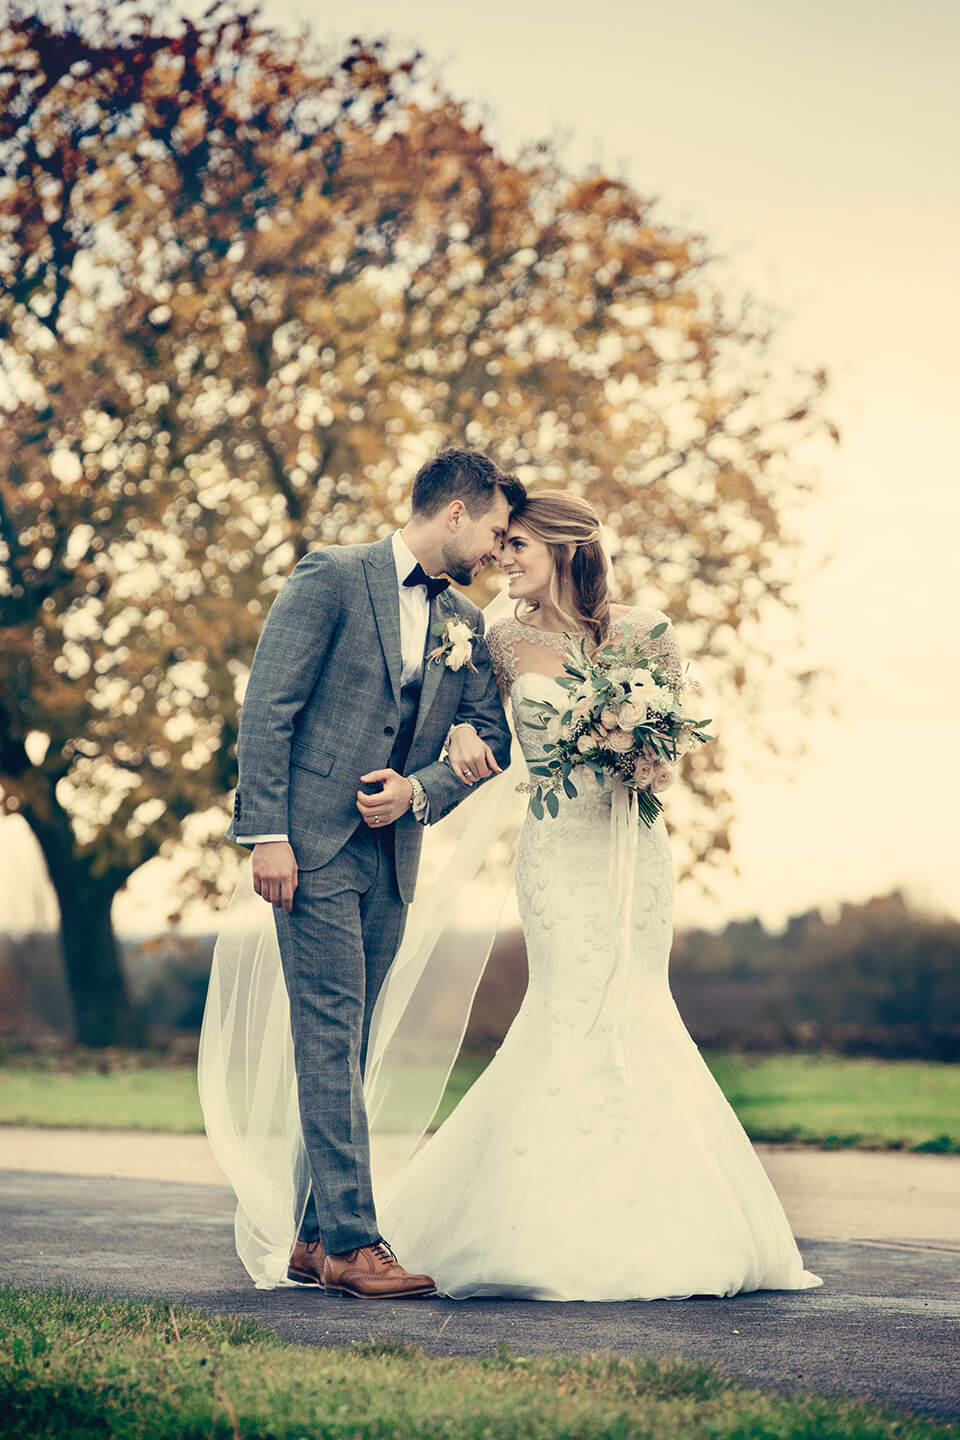 Nicola and Daniel walk arm in arm down the long drive leading up to the venue – wedding venues Cambridgeshire